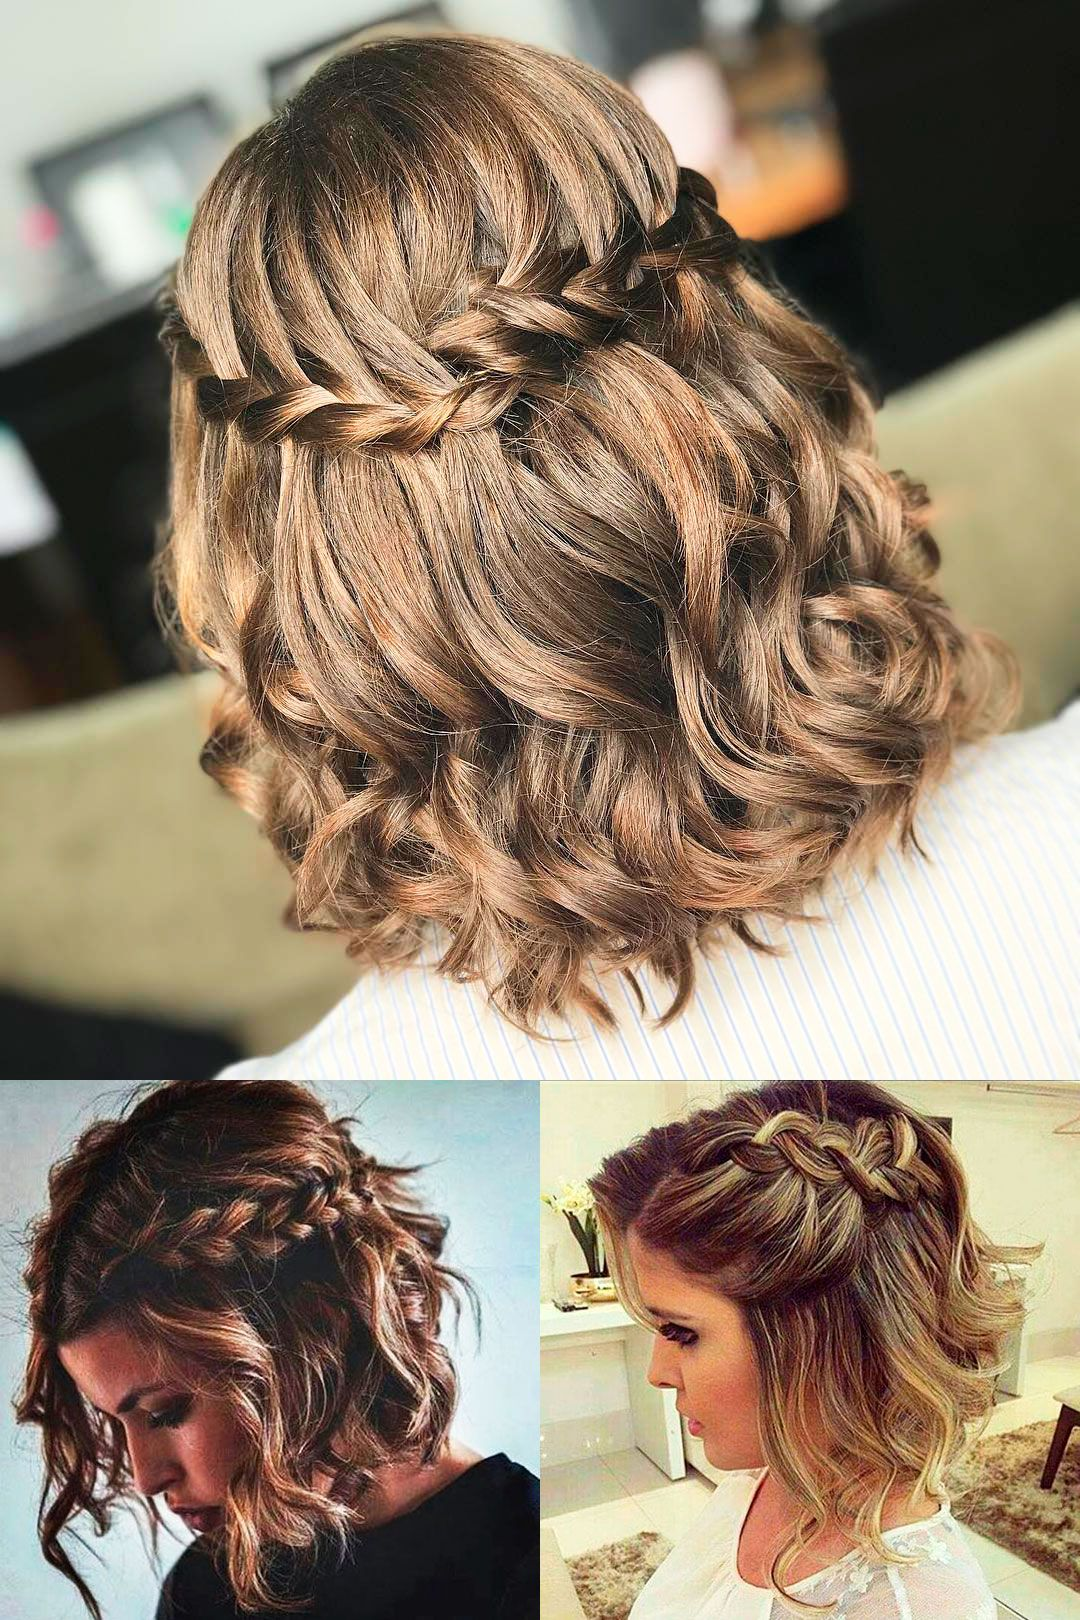 17 Most Attractive Short Curly Hairstyles For Women Loose Curls Short Hair How To Curl Short Hair Curled Hair With Braid